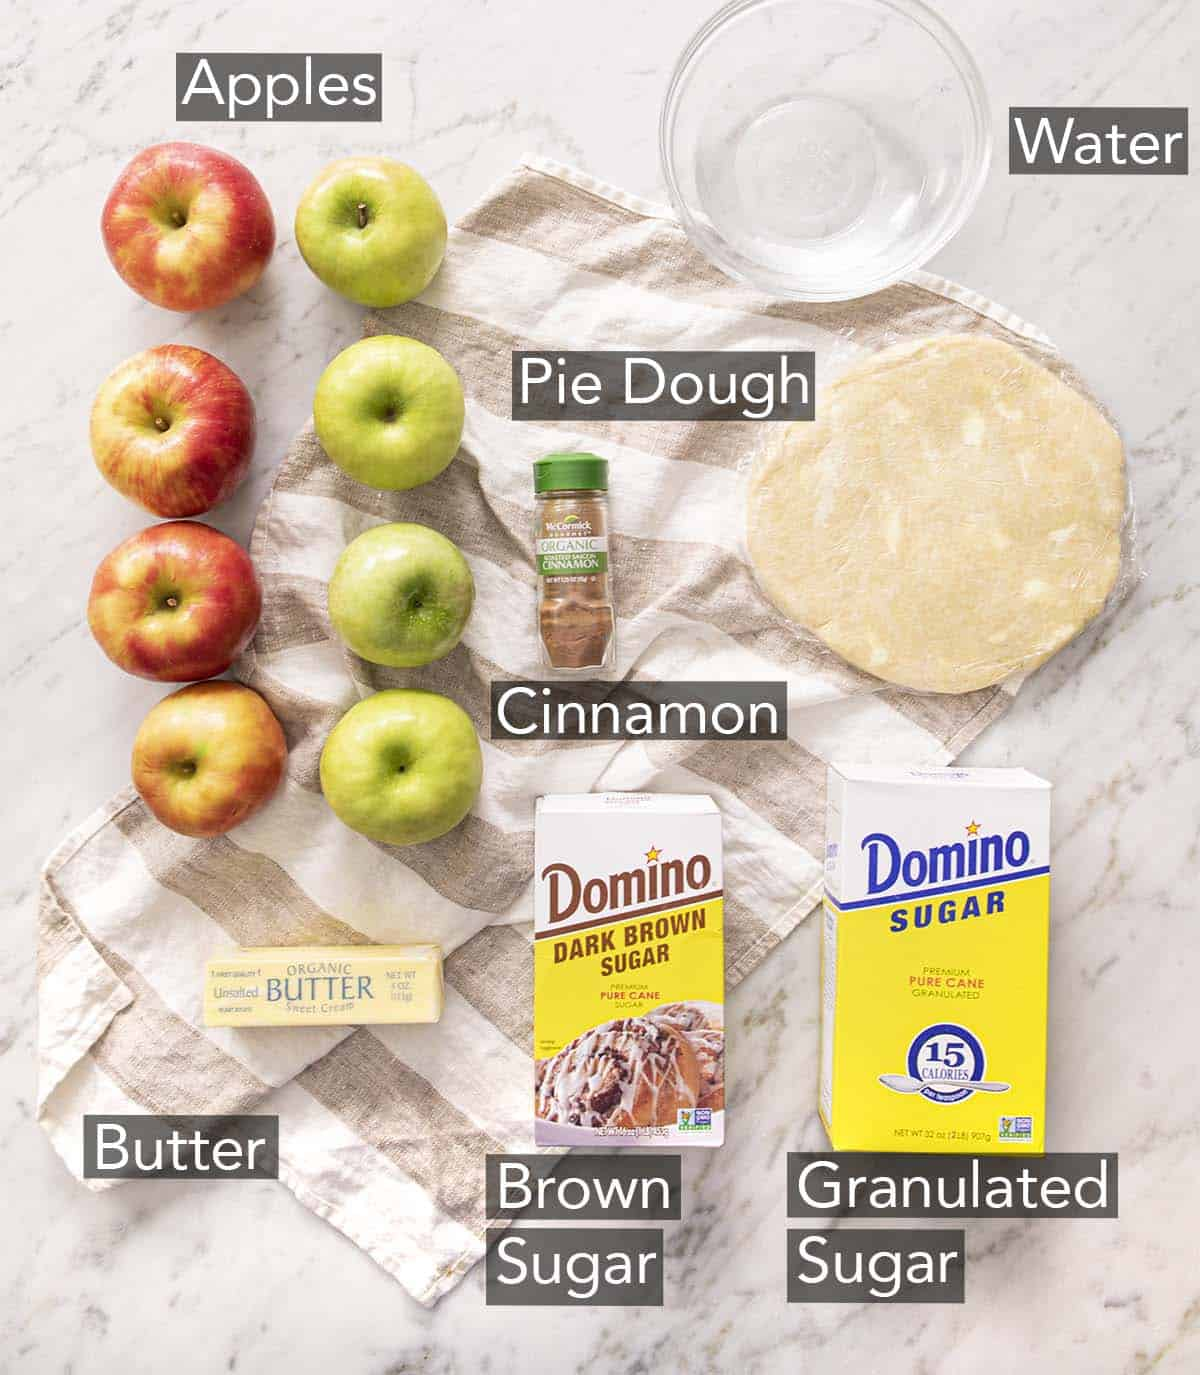 Ingredients for making apple dumplings on a counter.